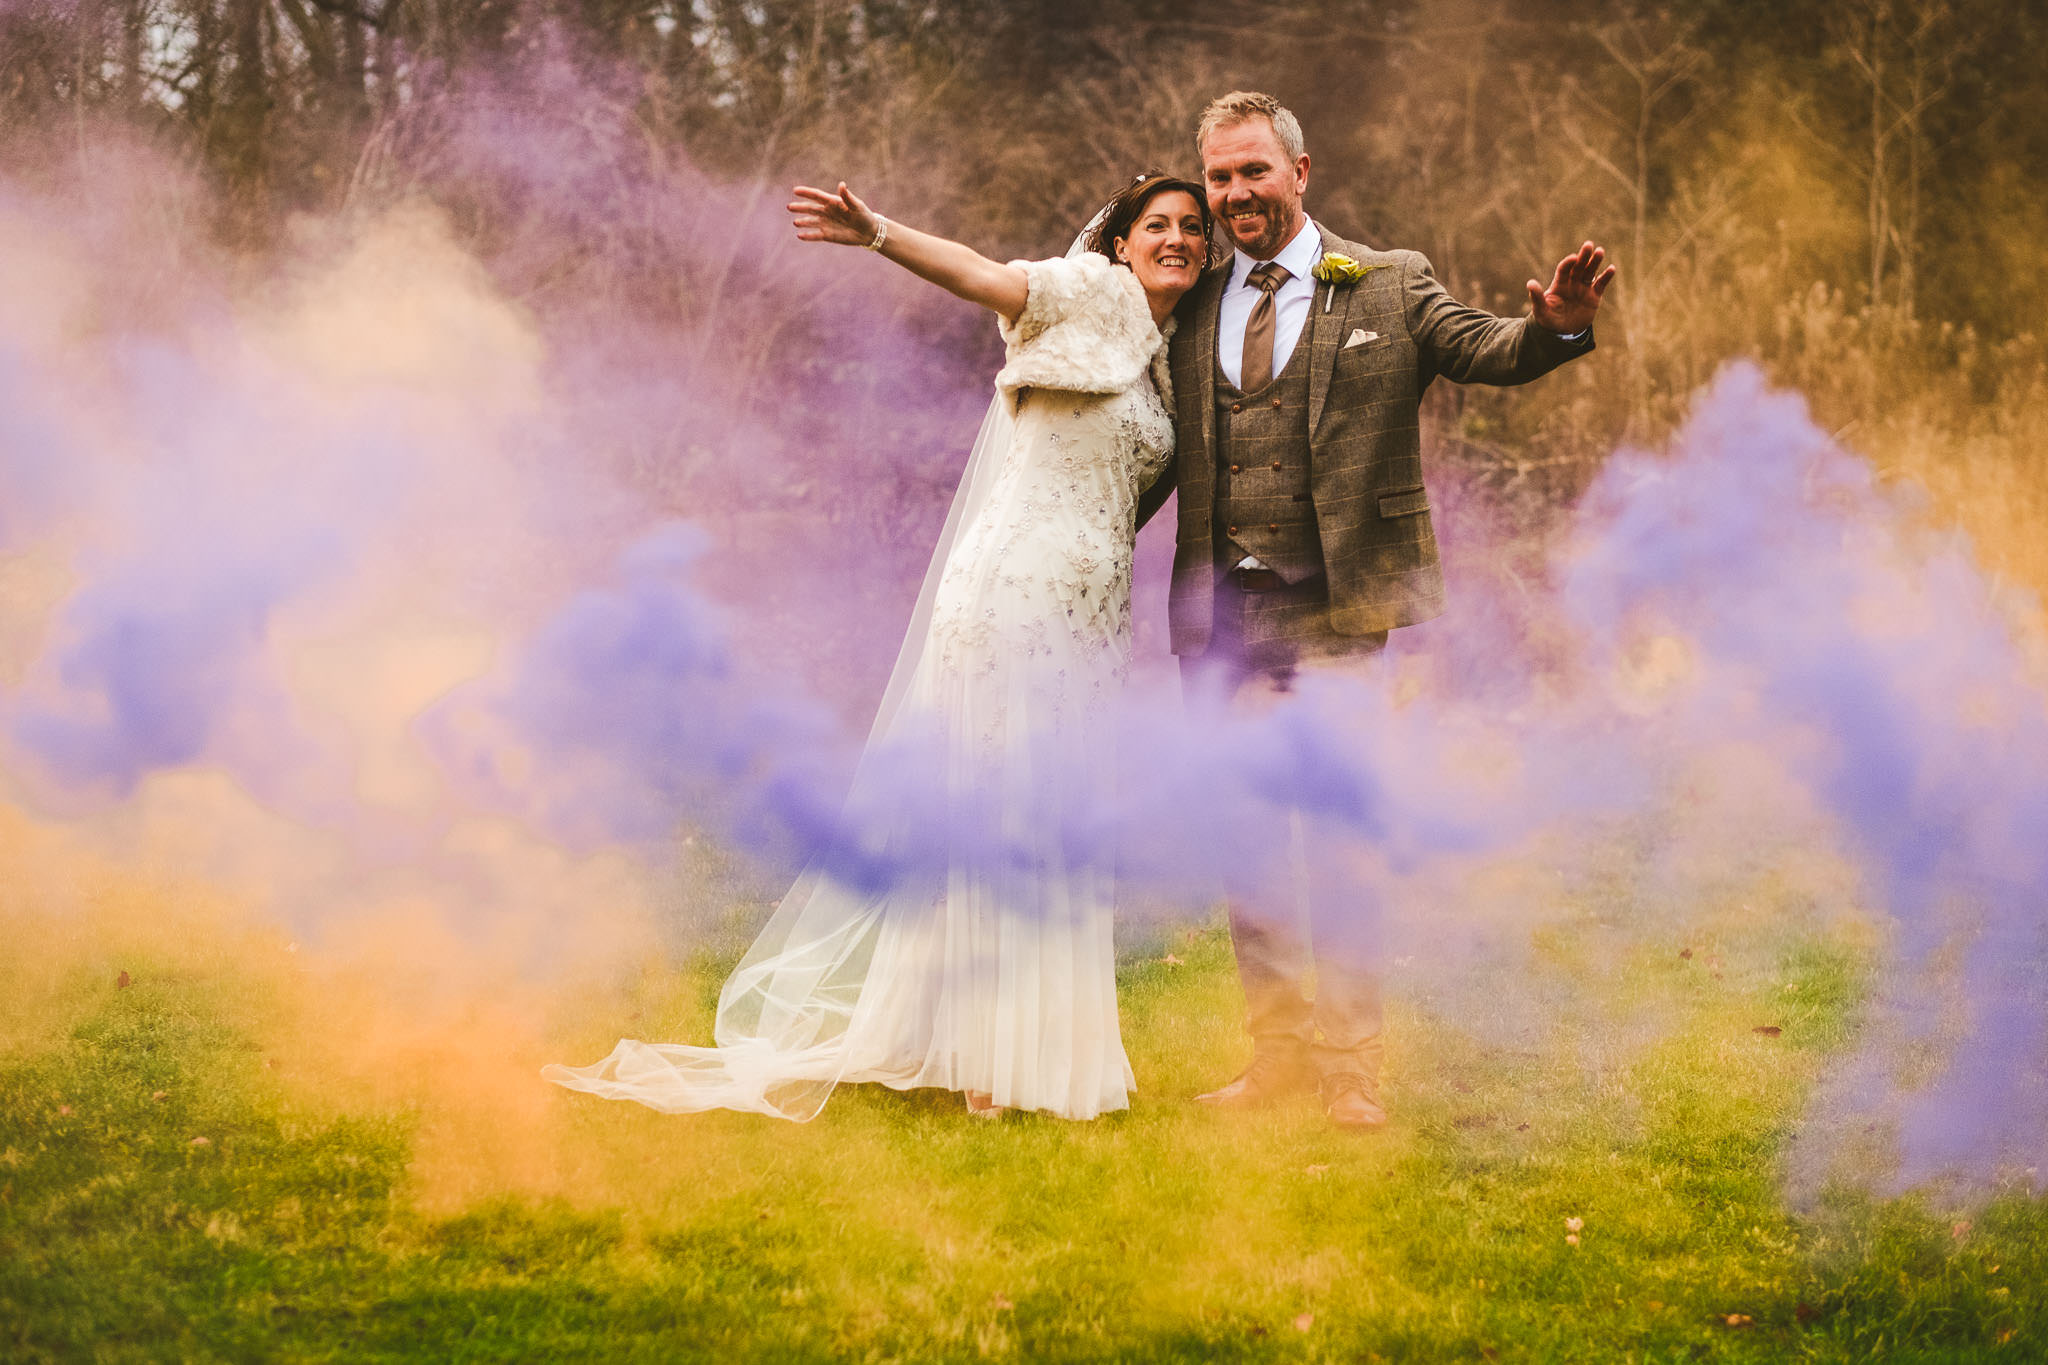 We used a number of colours of smoke bombs during the wedding. Bright primary colours work best, especially reds, yellows, oranges and purples.